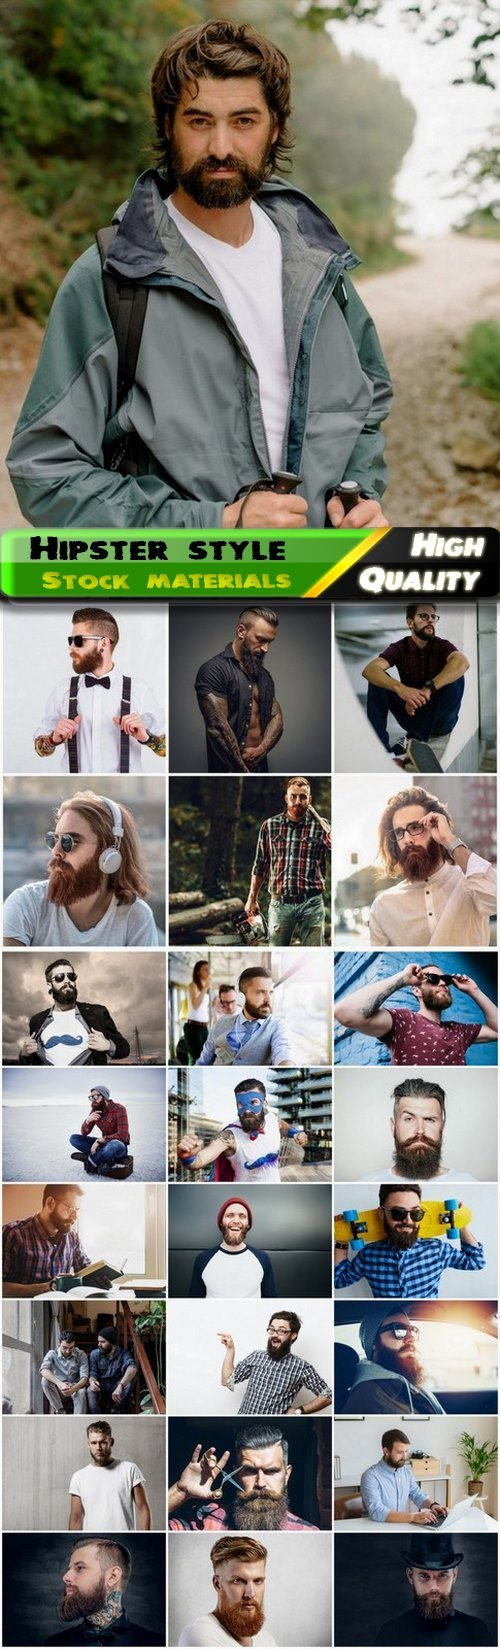 Man and teenager with beard and mustache in hipster style 25 HQ Jpg